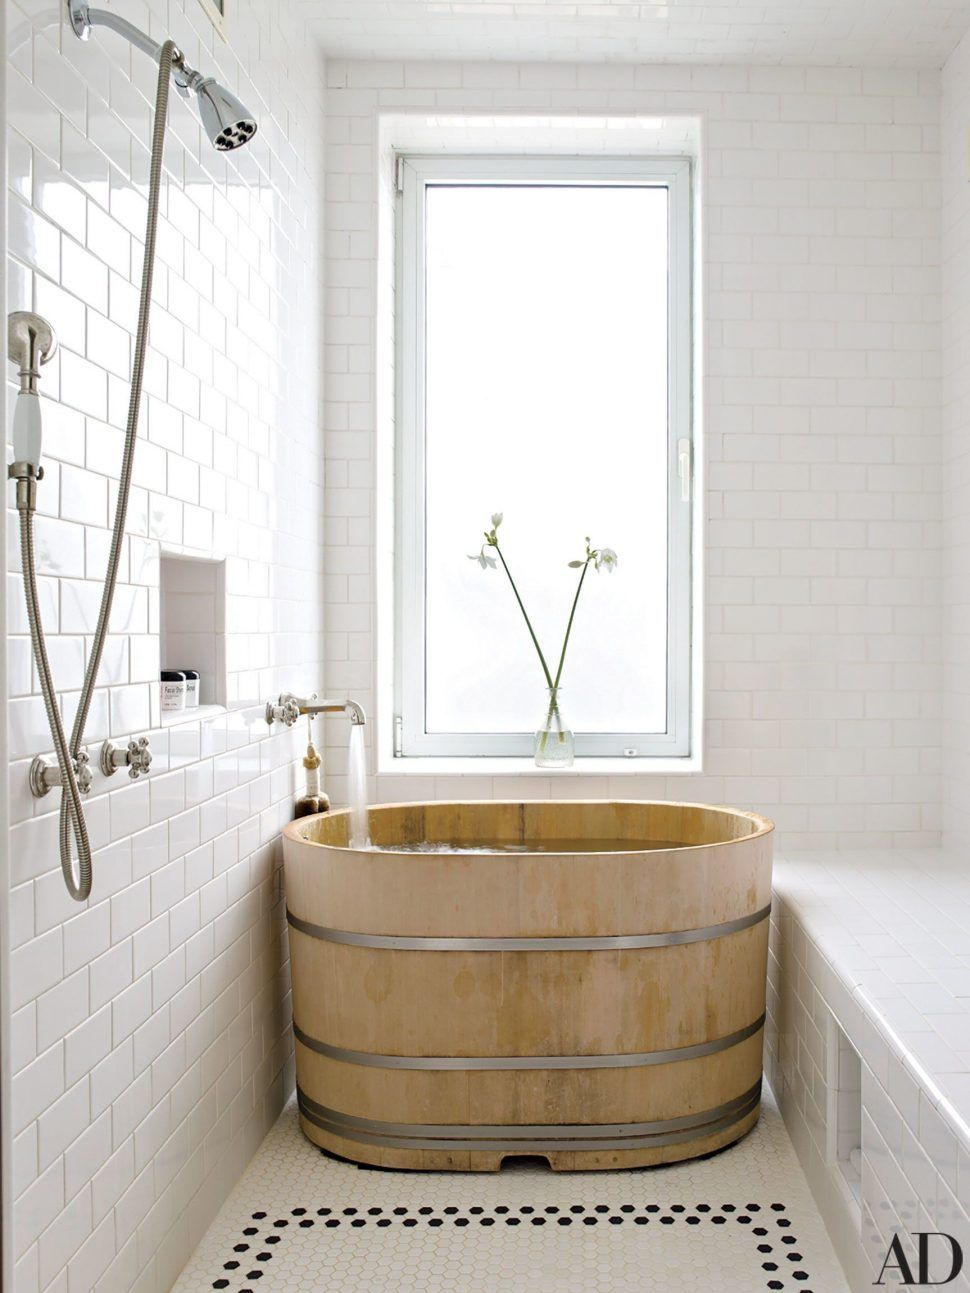 Bathrooms Design Cedar Japanese Soaking Tub Japanese Wooden Bathtub ...